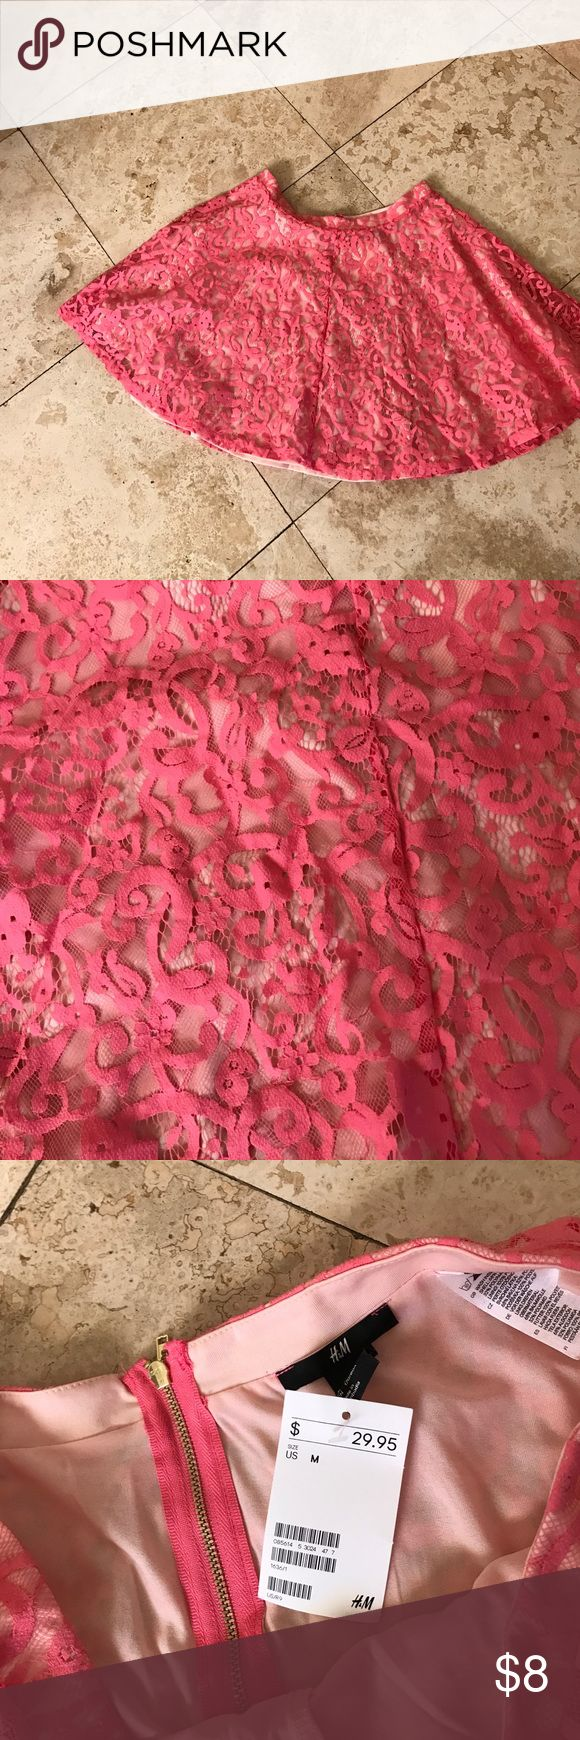 H&M lace pink skater skirt. Size M H&M lace pink skater skirt. Size M. Bright pink lace over lighter linning. Gorgeous  new with tags H&M Skirts Mini